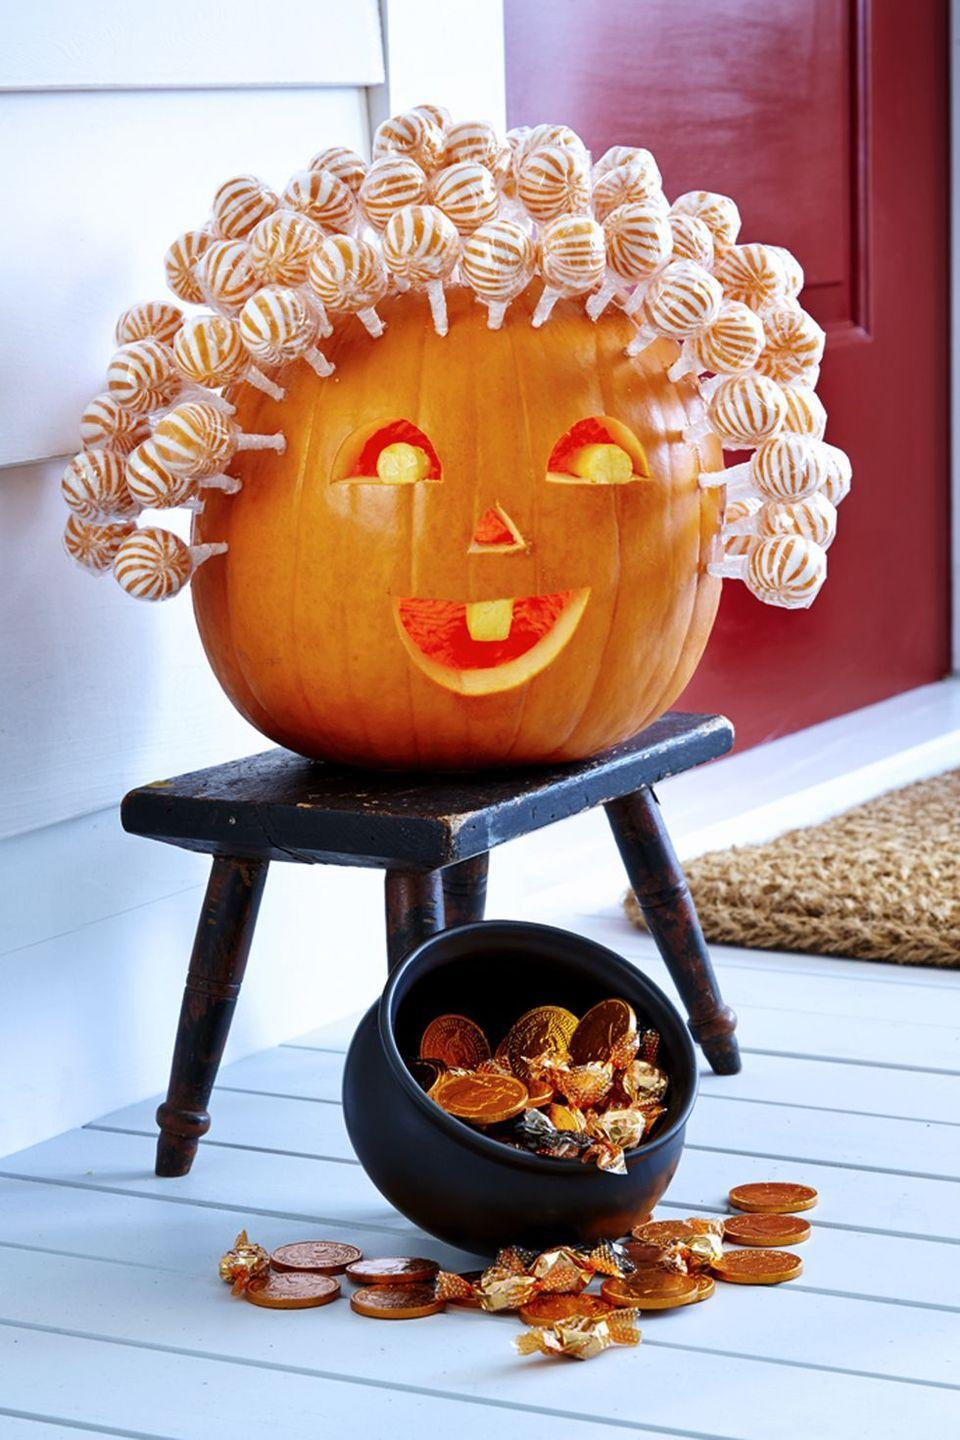 """<p>Have you seen a sweeter pumpkin? With orange and white <a href=""""https://www.amazon.com/Swipple-Petite-Swirl-Ripple-Lollipops/dp/B075G5Z5YN/ref=sr_1_4?tag=syn-yahoo-20&ascsubtag=%5Bartid%7C10055.g.23570028%5Bsrc%7Cyahoo-us"""" rel=""""nofollow noopener"""" target=""""_blank"""" data-ylk=""""slk:lollipops"""" class=""""link rapid-noclick-resp"""">lollipops</a> making up the """"hair,"""" most of the design is done. It's minimal carving and maximal fun. <br></p><p><a class=""""link rapid-noclick-resp"""" href=""""https://www.amazon.com/Swipple-Petite-Swirl-Ripple-Lollipops/dp/B075G5Z5YN/ref=sr_1_4?tag=syn-yahoo-20&ascsubtag=%5Bartid%7C10055.g.23570028%5Bsrc%7Cyahoo-us"""" rel=""""nofollow noopener"""" target=""""_blank"""" data-ylk=""""slk:SHOP LOLLIPOPS"""">SHOP LOLLIPOPS</a> </p>"""